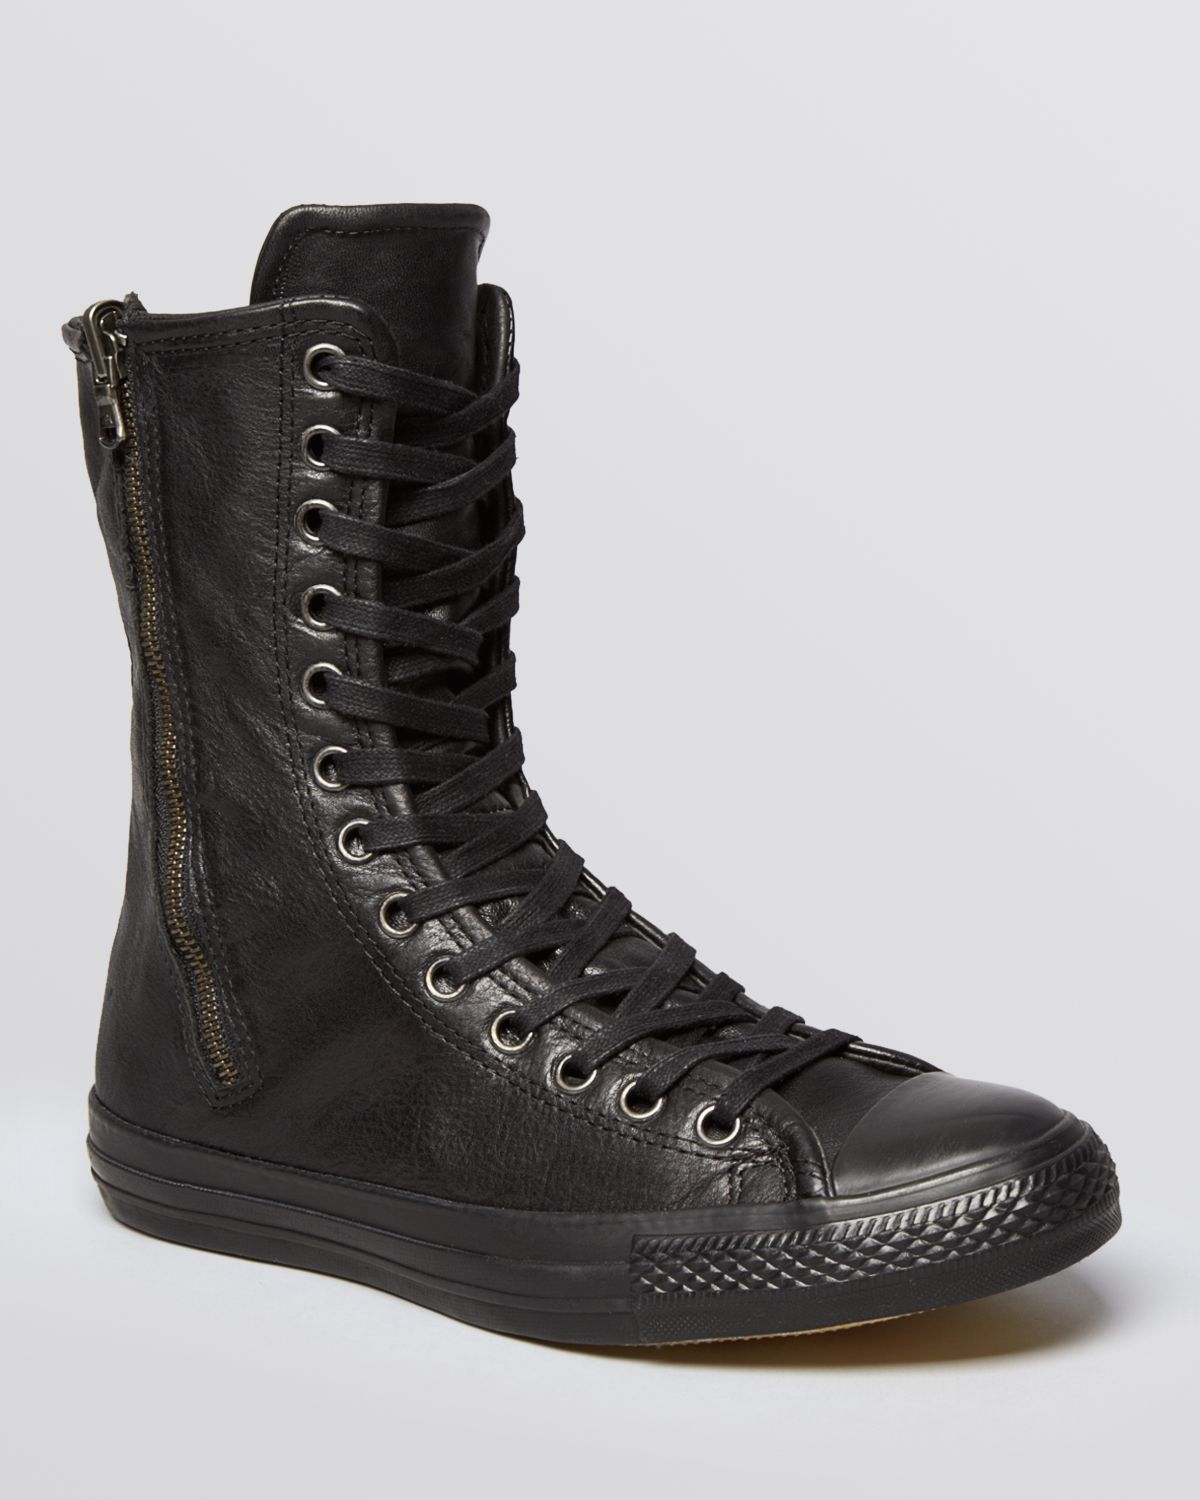 converse chuck all x high top sneakers in